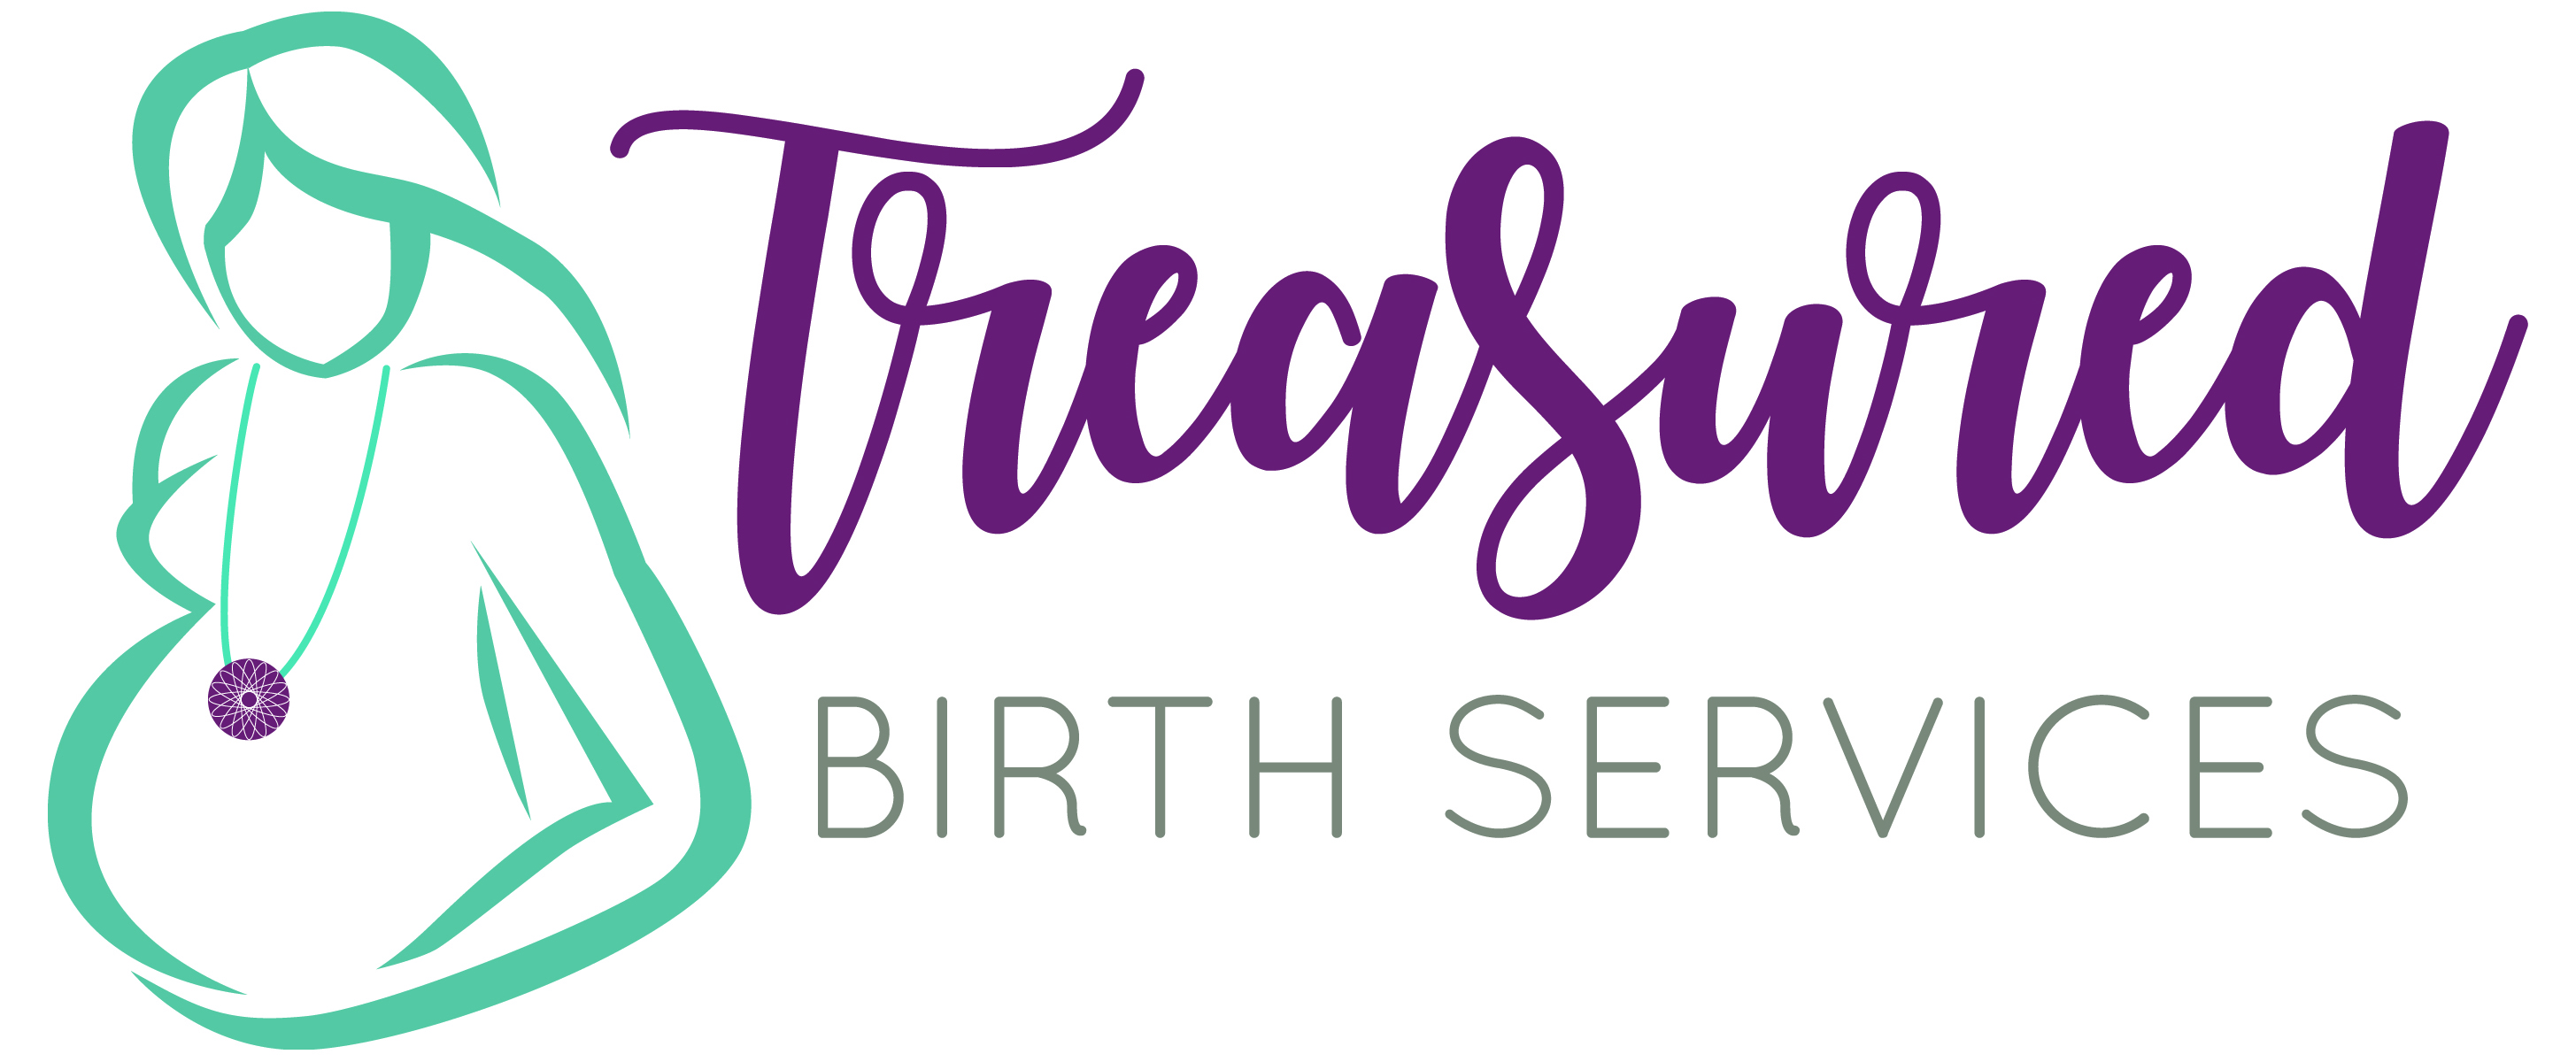 Treasured Birth Services – Utah Birth Services – Hanan Webster – Birth Boot Camp Doula Services and Childbirth Education